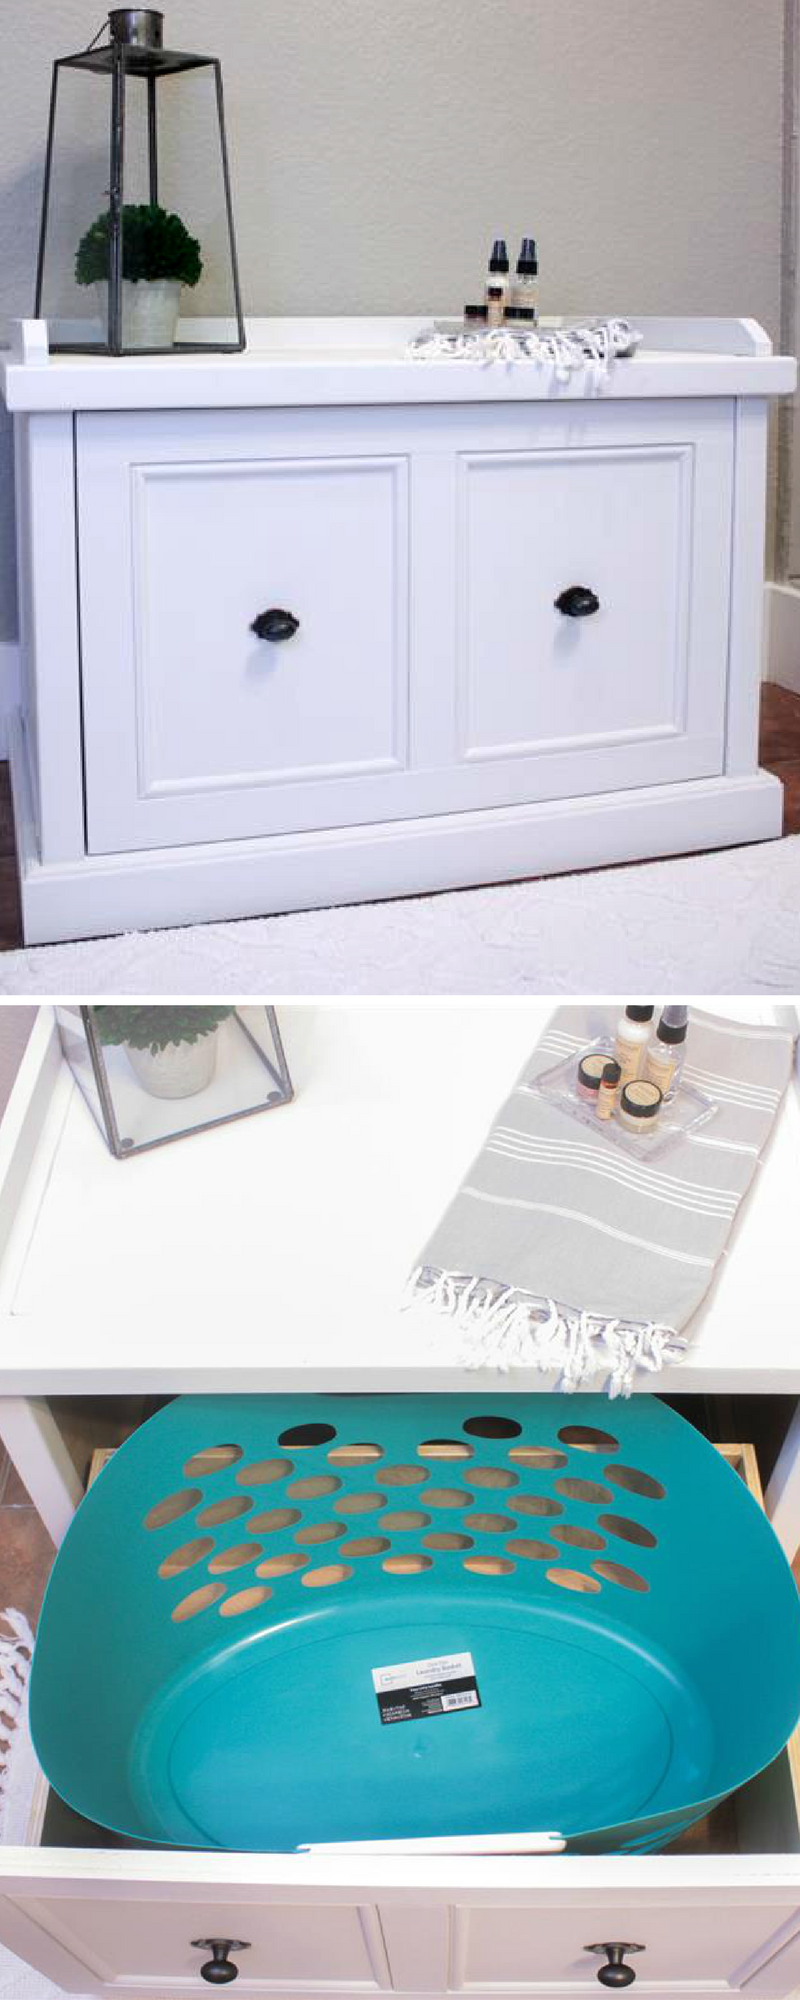 How To Build A Diy Laundry Hamper Bench Free Printable Project